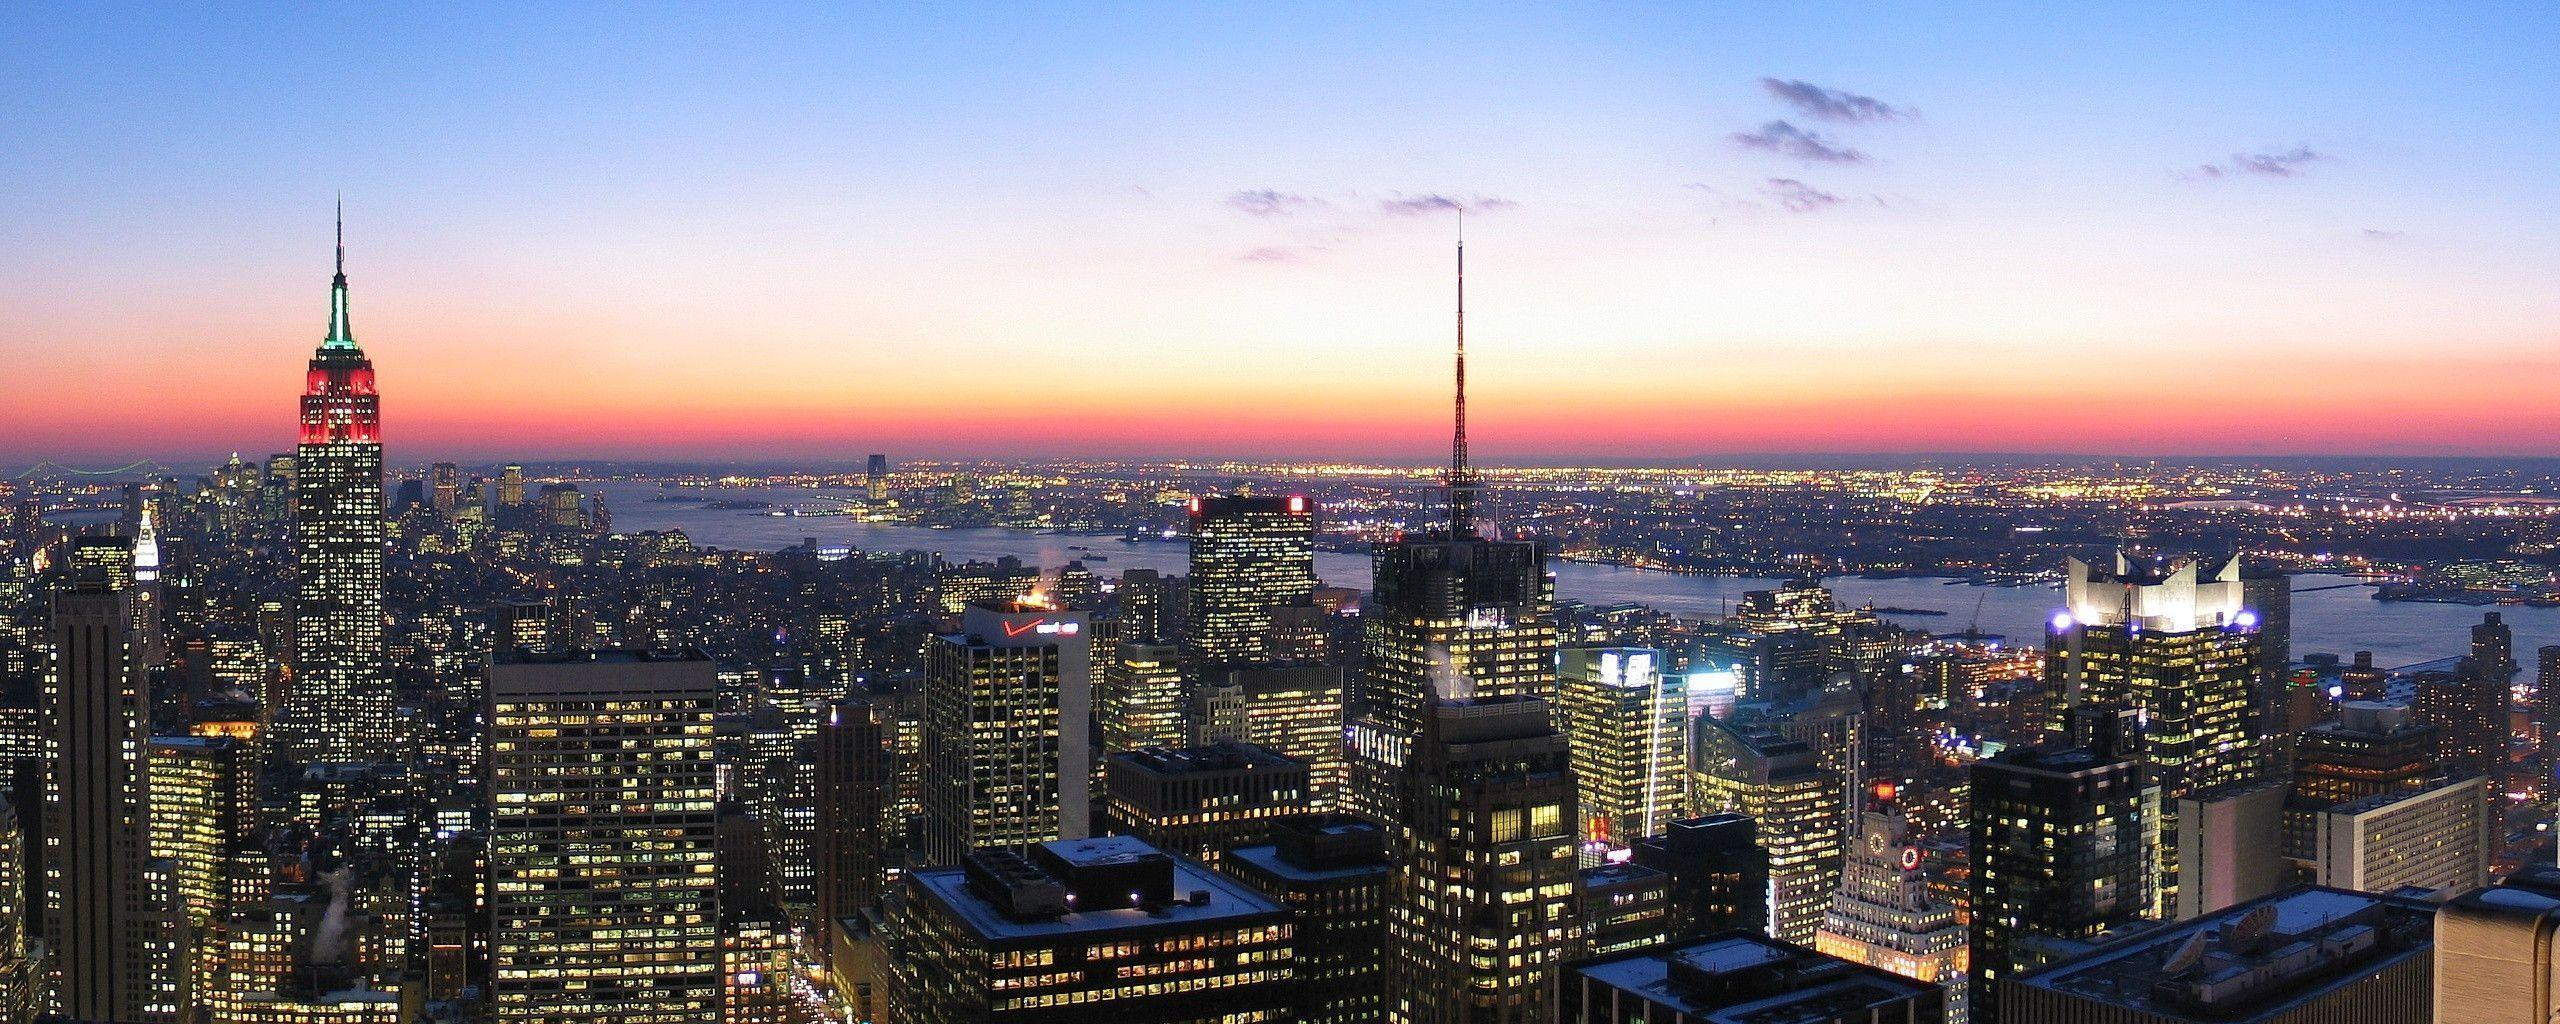 New York City Wallpapers Widescreen Categories City Wallpapers